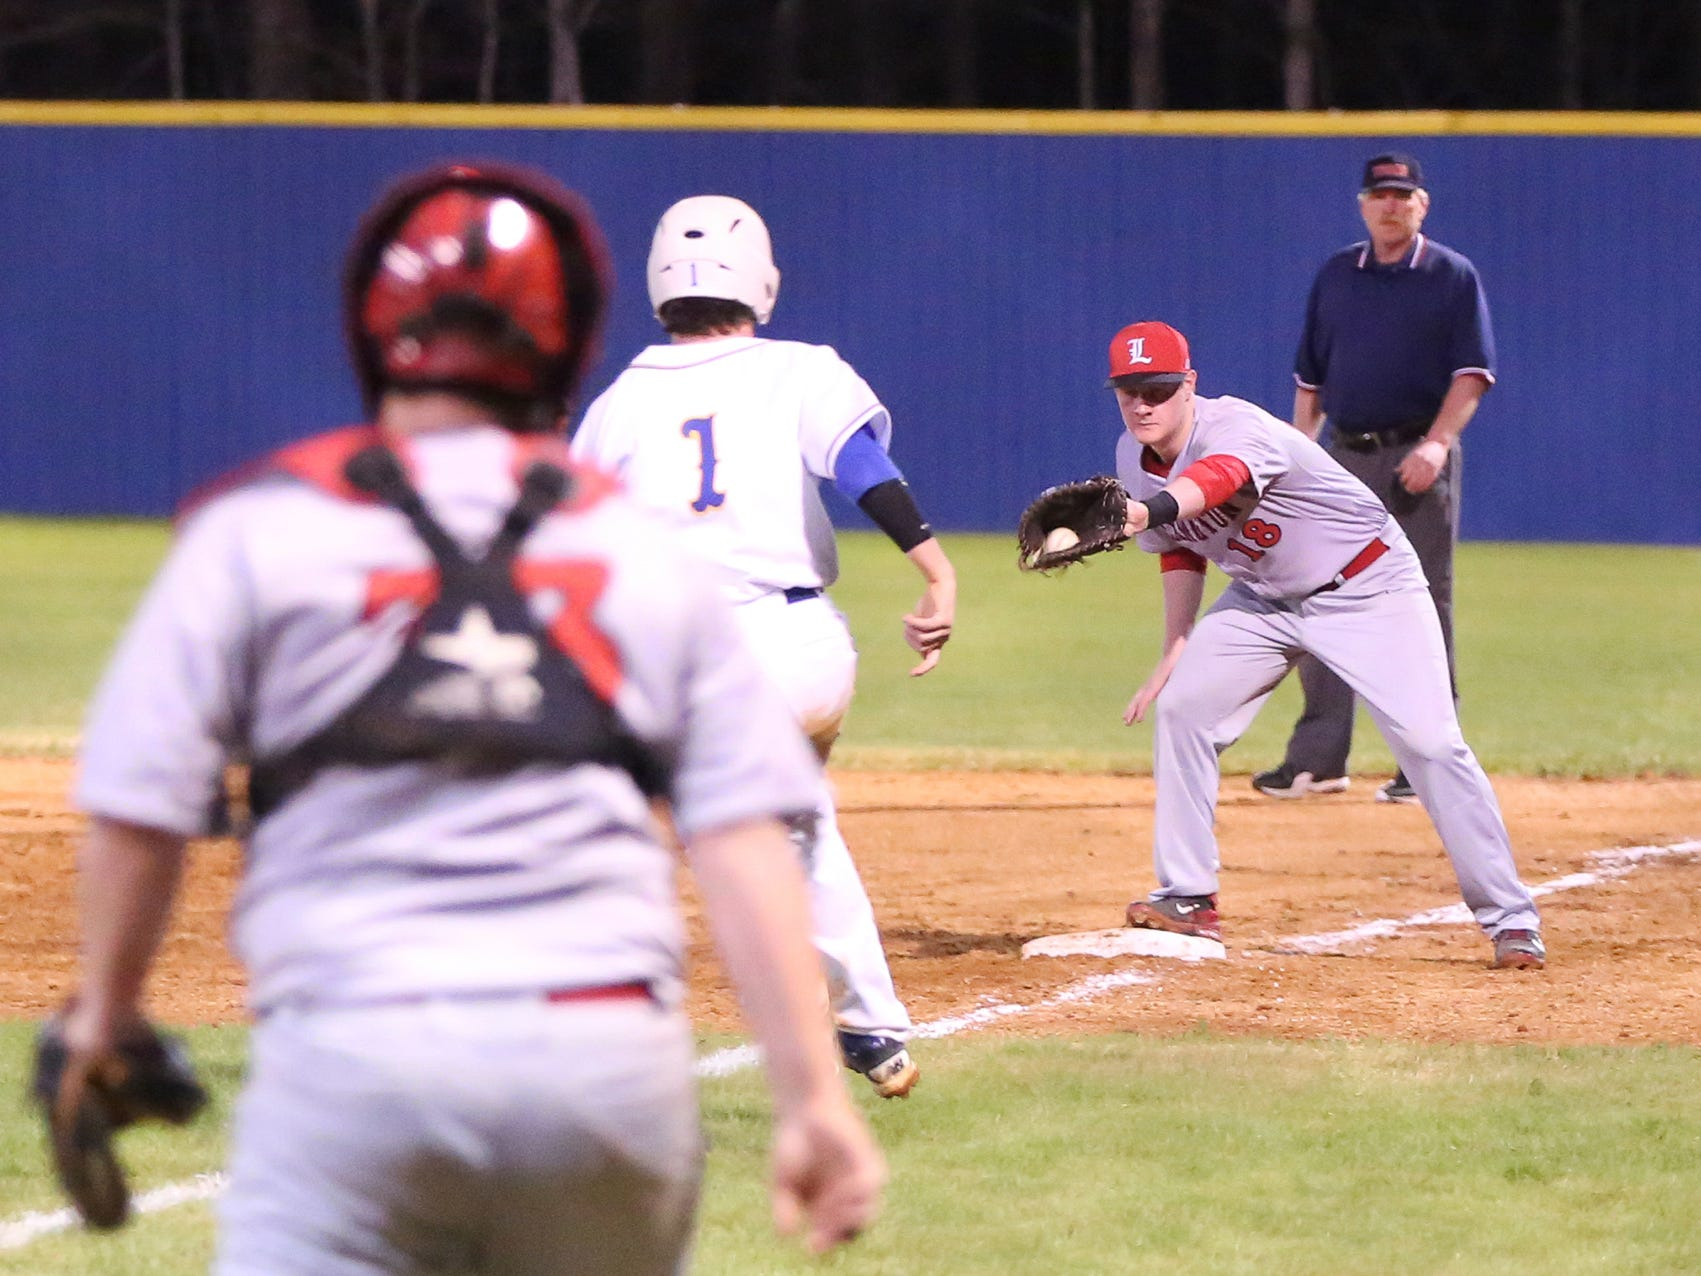 Lexington's Heath Essary makes a catch at first base against McNairy Central earlier this season.